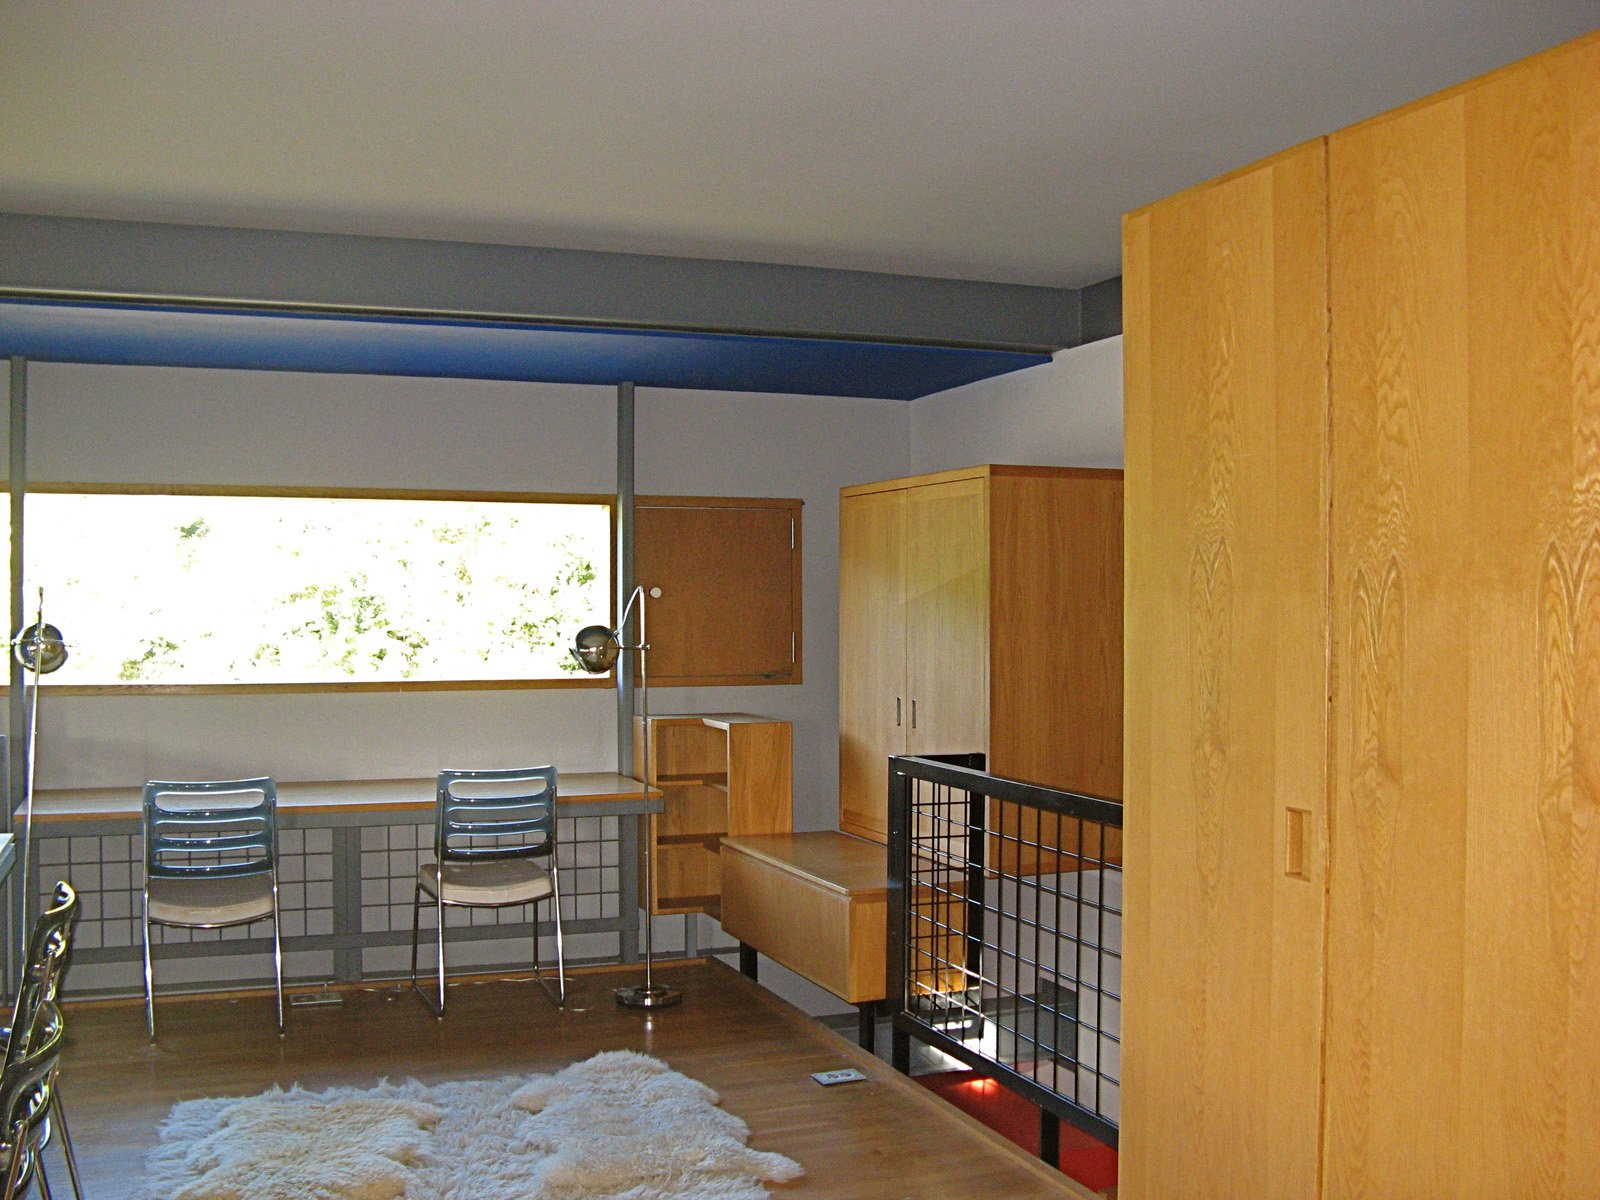 """A view of one of the boys' bedroom shows how the furniture was built into the wall and the relationship of walls to the floor, making clear, as Guyon has described, that this is really """"an experiment masquerading as a house."""" As is indicative of a pure Modernist home, all glass is fixed, with separate screened compartments for ventilation. Circulation and places of repose are also separated. As one can see at the right of the frame, the box is denied, the cube explodes, things come apart and nothing directly touches. """"Its not egalitarian, its completely elite. Though many find it to be bare bones, its just really intense in its craft,"""" says Guyon.  Photo 9 of 10 in Modern in Lexington, Kentucky"""